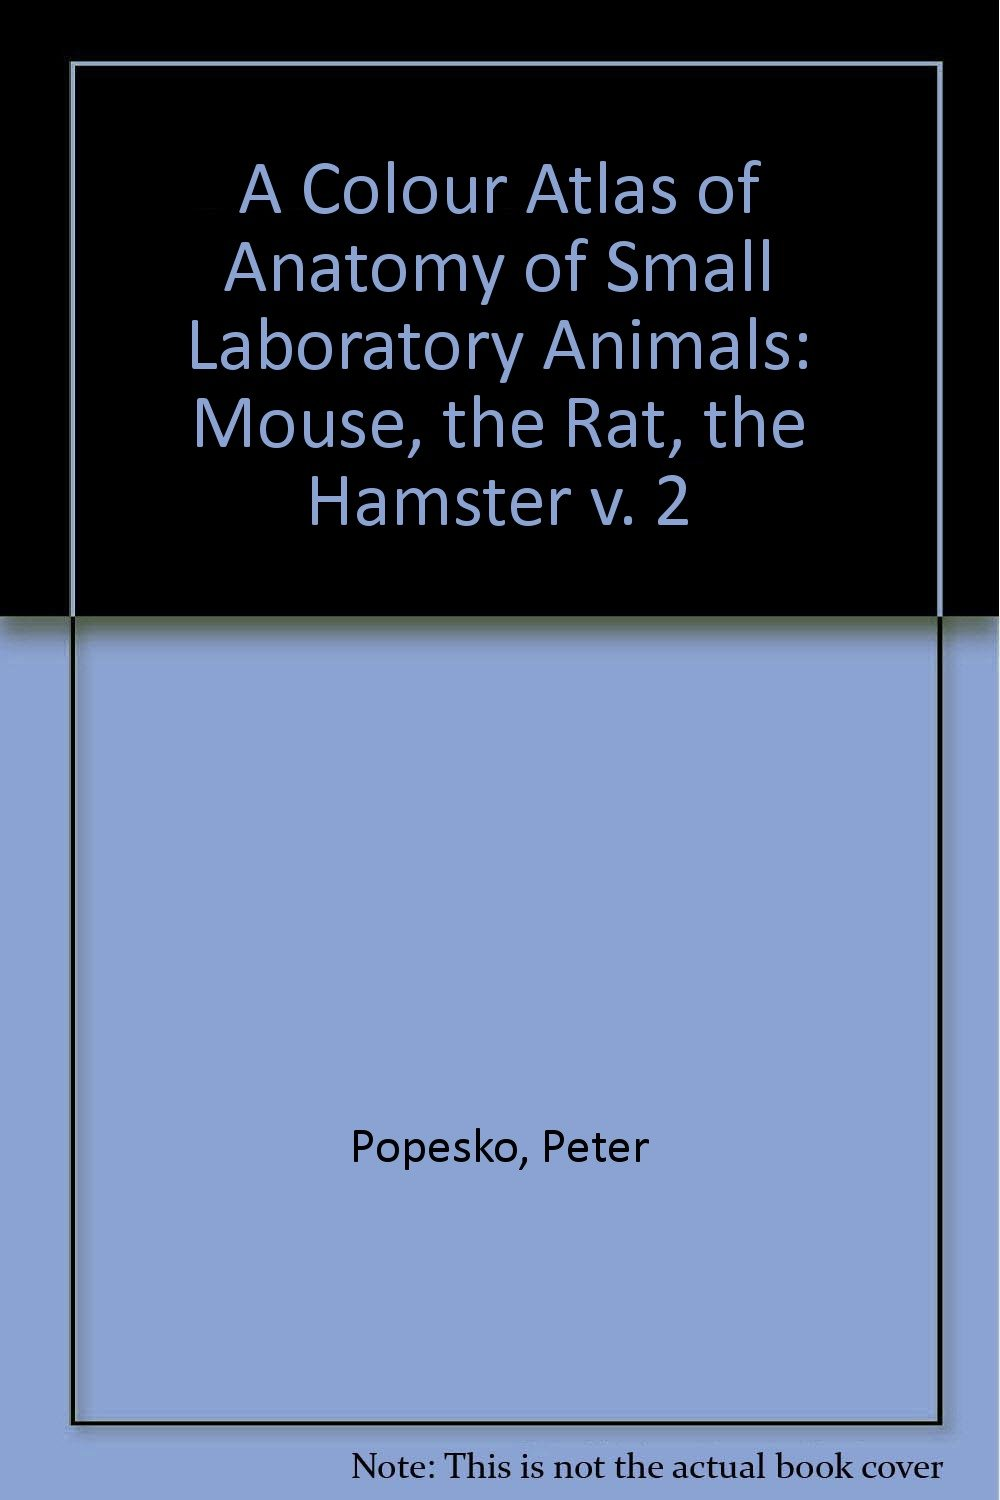 A Colour Atlas of Anatomy of Small Laboratory Animals, Volume II ...